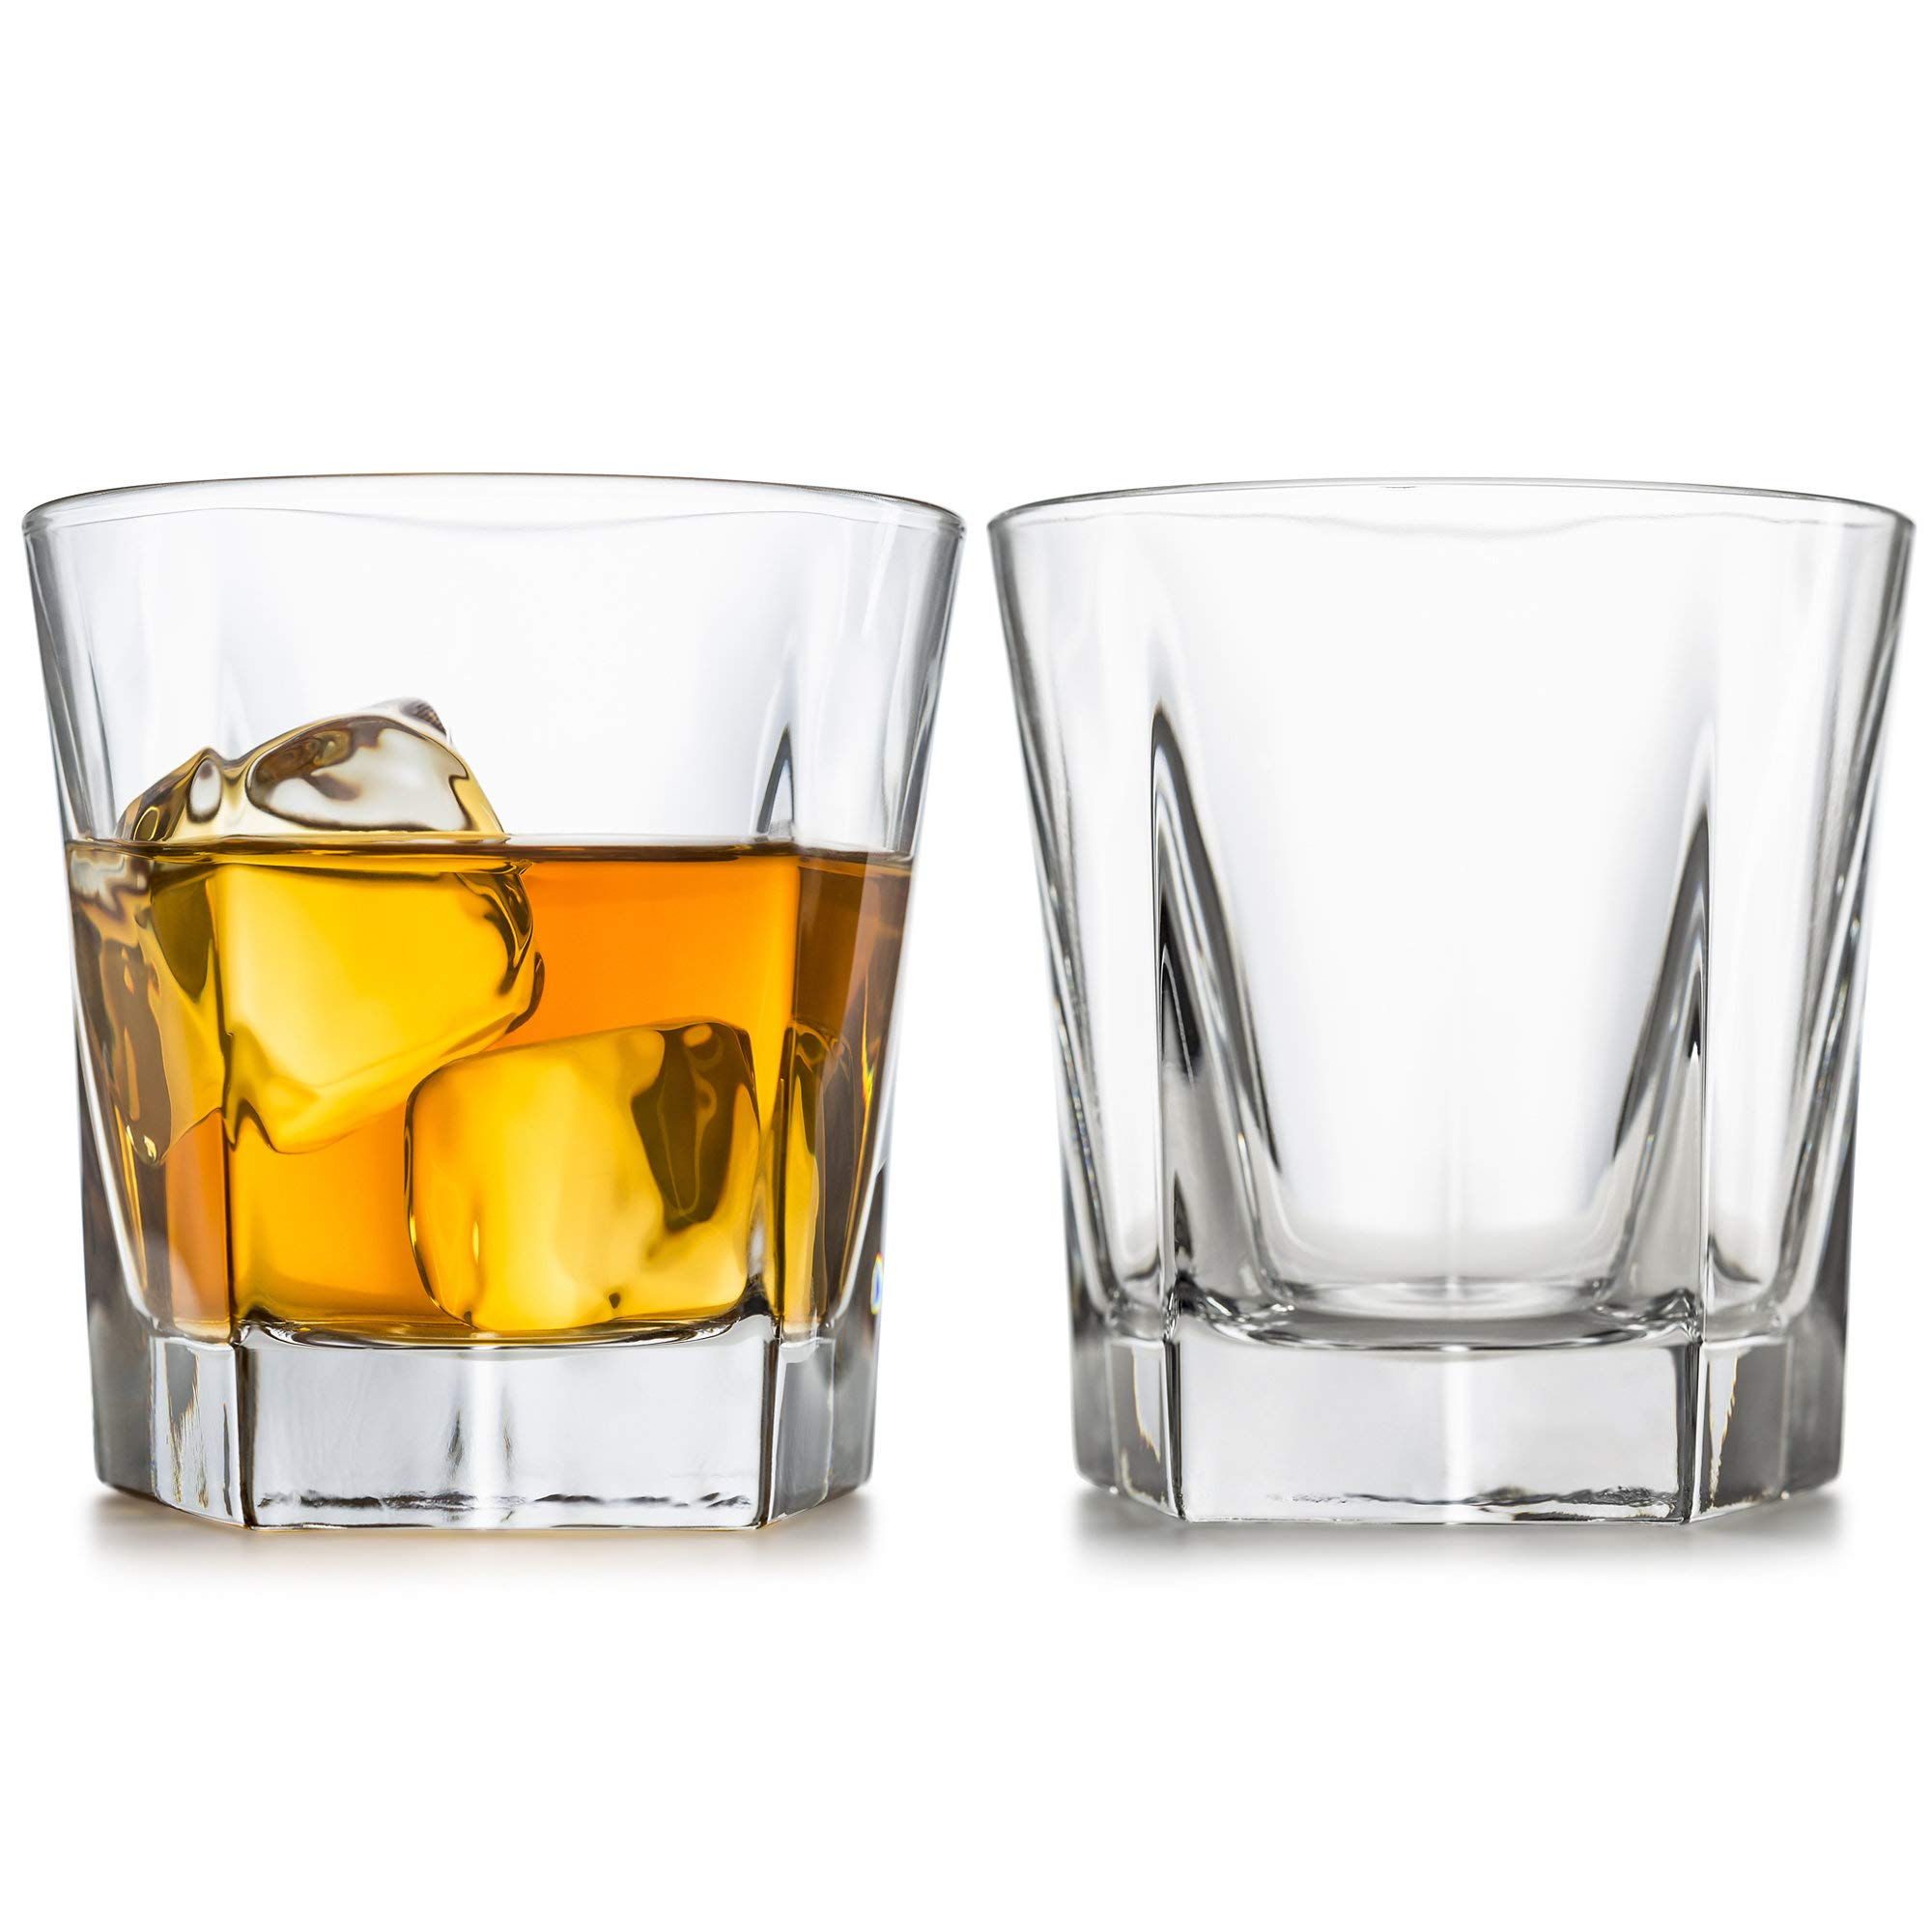 Whiskey Glasses, Set Of 2 – By Liquor Sip. Elegant Design- Large 12 oz Lead-free Tumblers- best glass cups for scotch or bourbon -10 Bonus Refreshing Cocktail Recipes enclosed in a stylish gift box by Liquor Sip (Image #6)